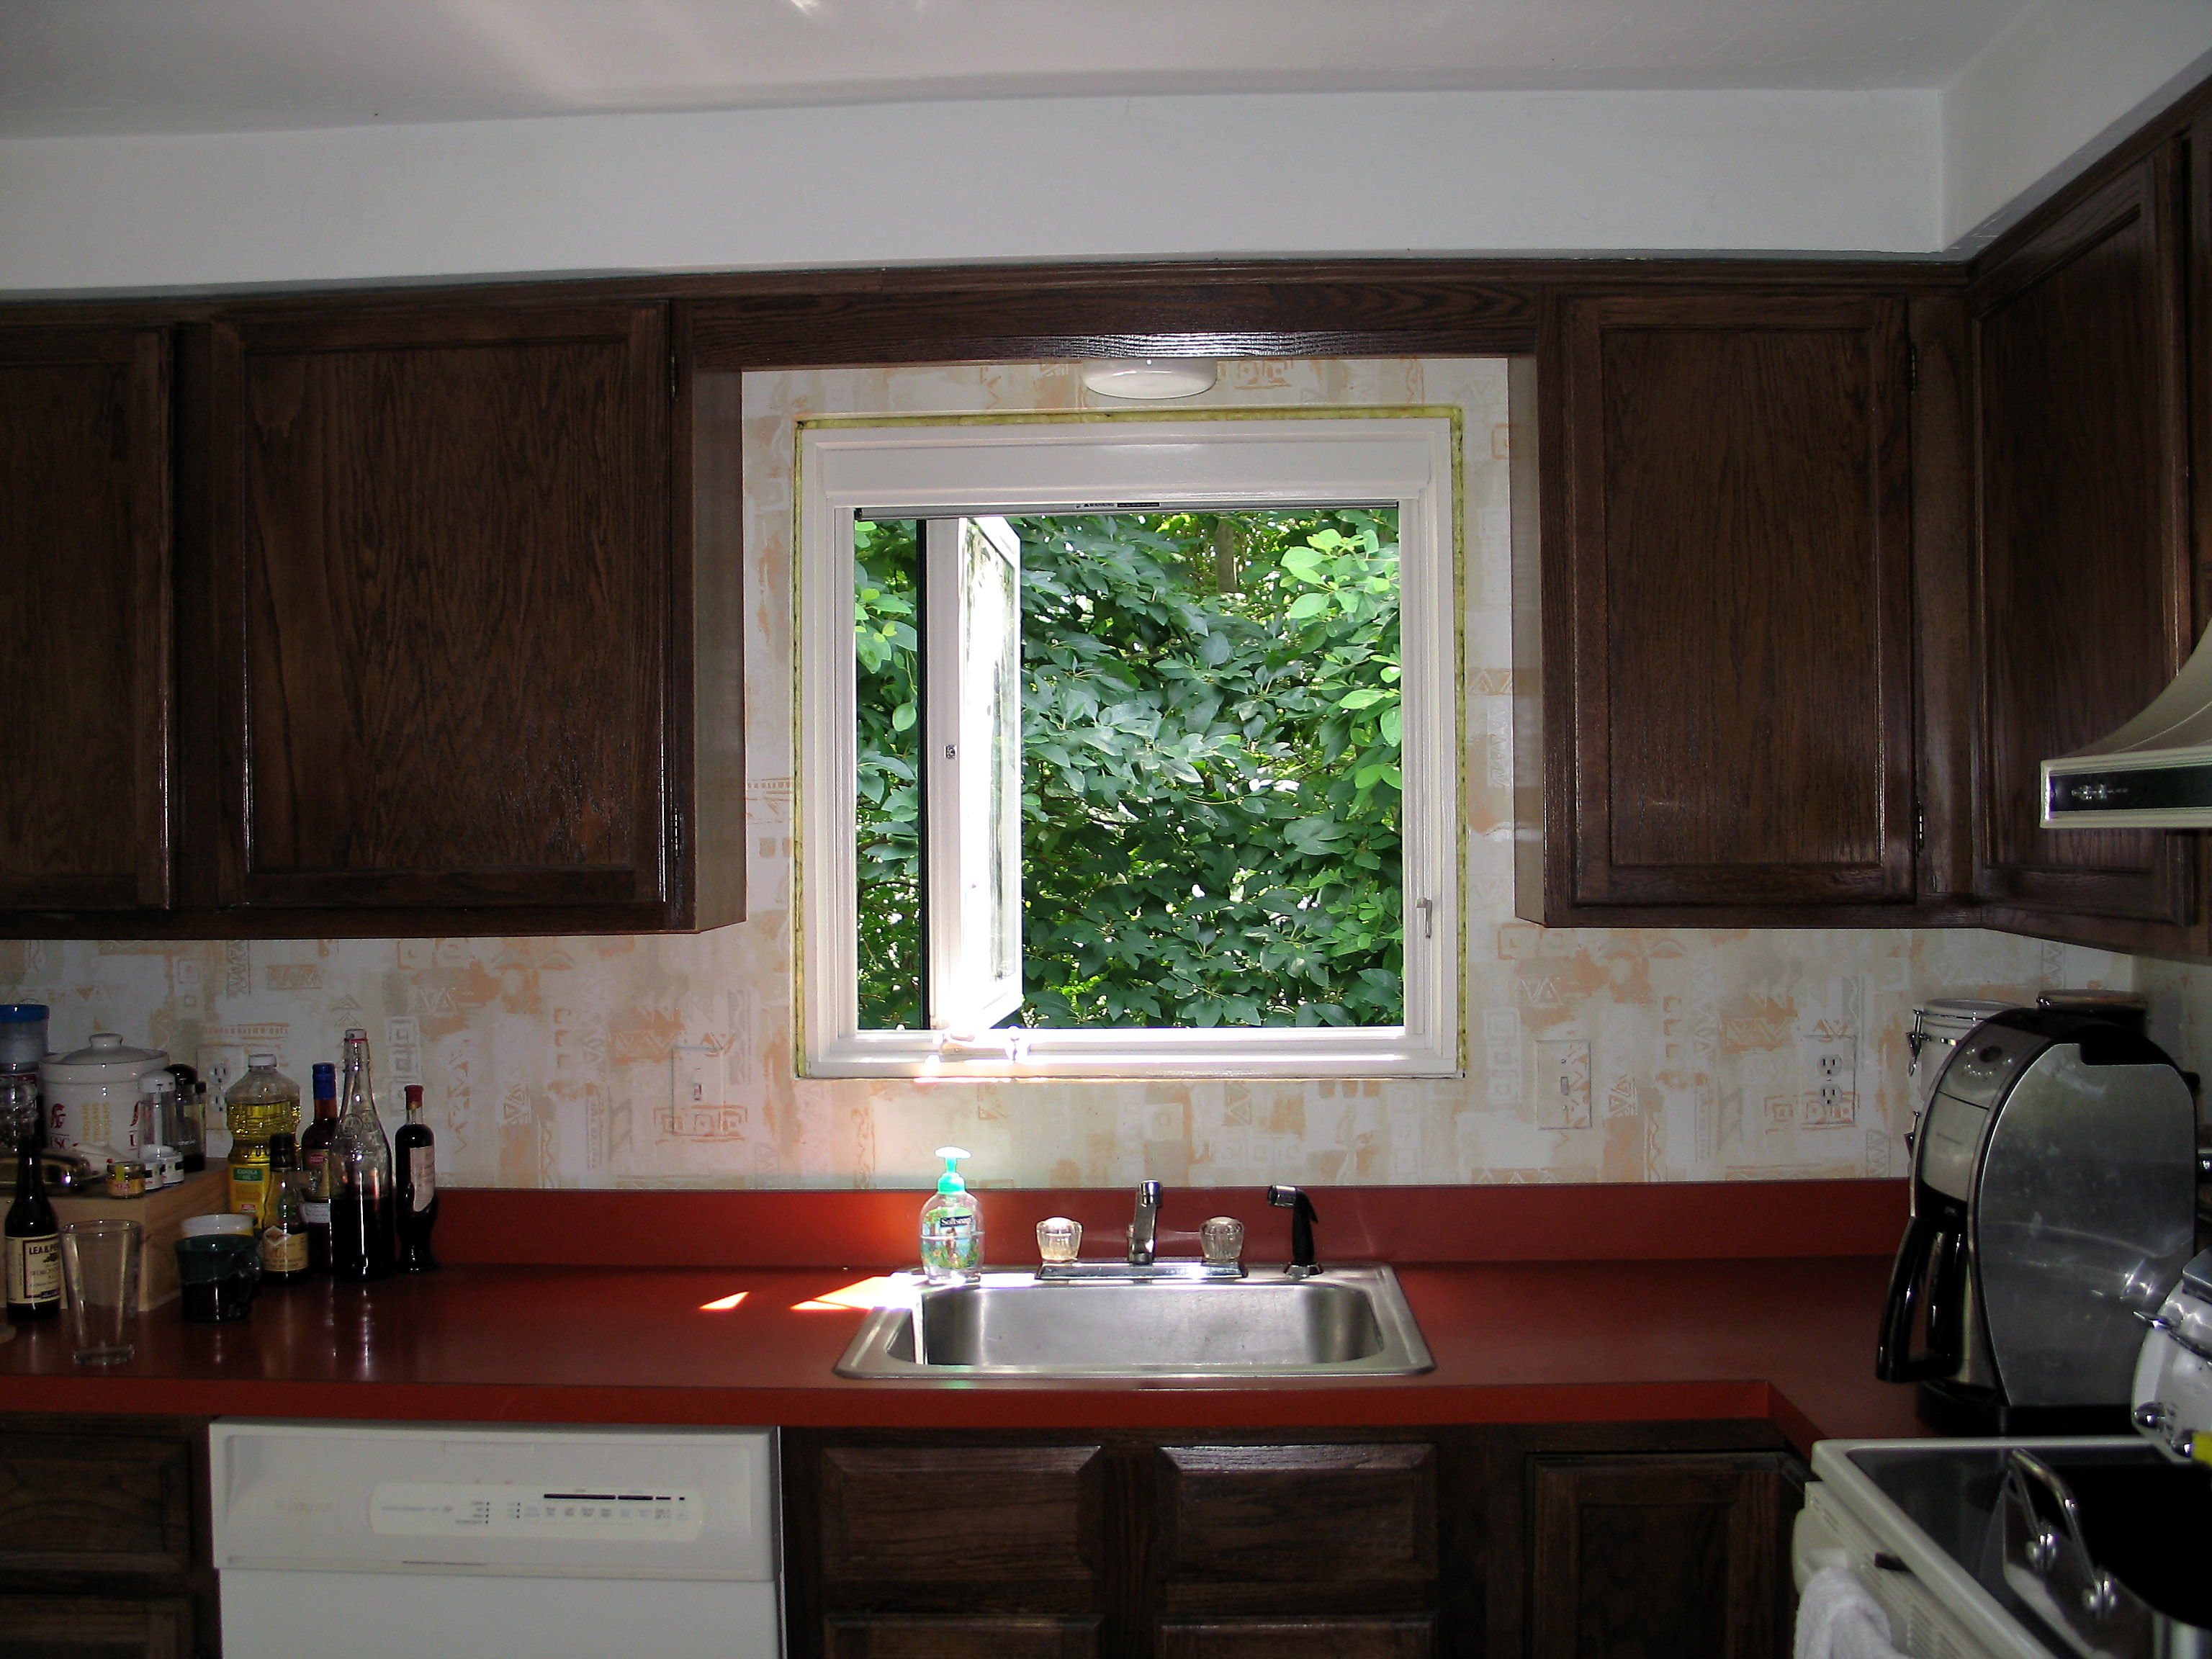 home depot roofing reviews ontario with Pella Windows Reviews on Pella Windows Reviews as well Urns Green White Gingham Valance further Attic Design furthermore Home Depot Ontario C257811 additionally X Acto 1 Knife.